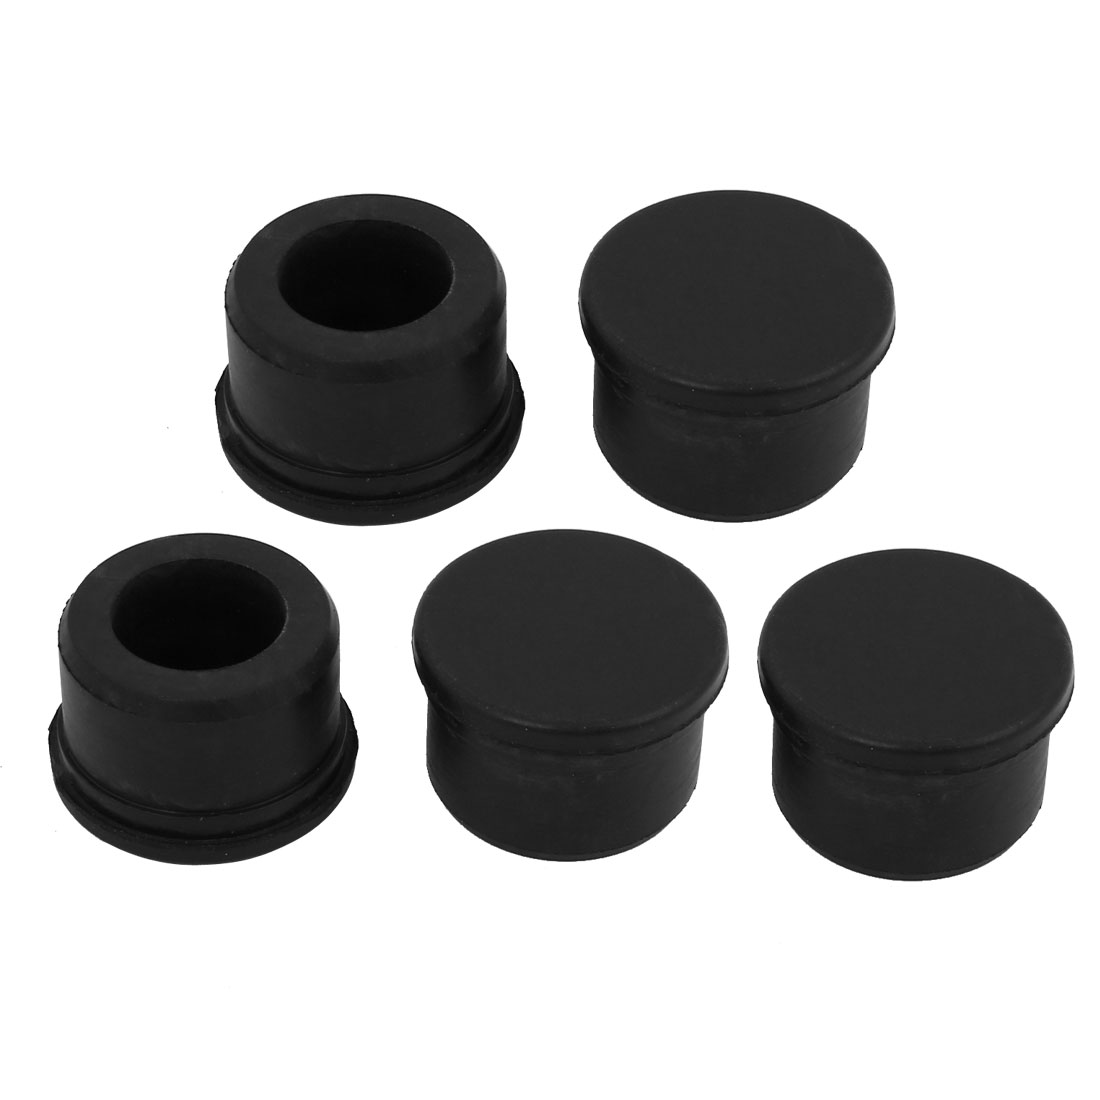 5pcs S-280 28mm Dia EPDM Rubber Seal Hole Insert Stopper Black for Cable Gland